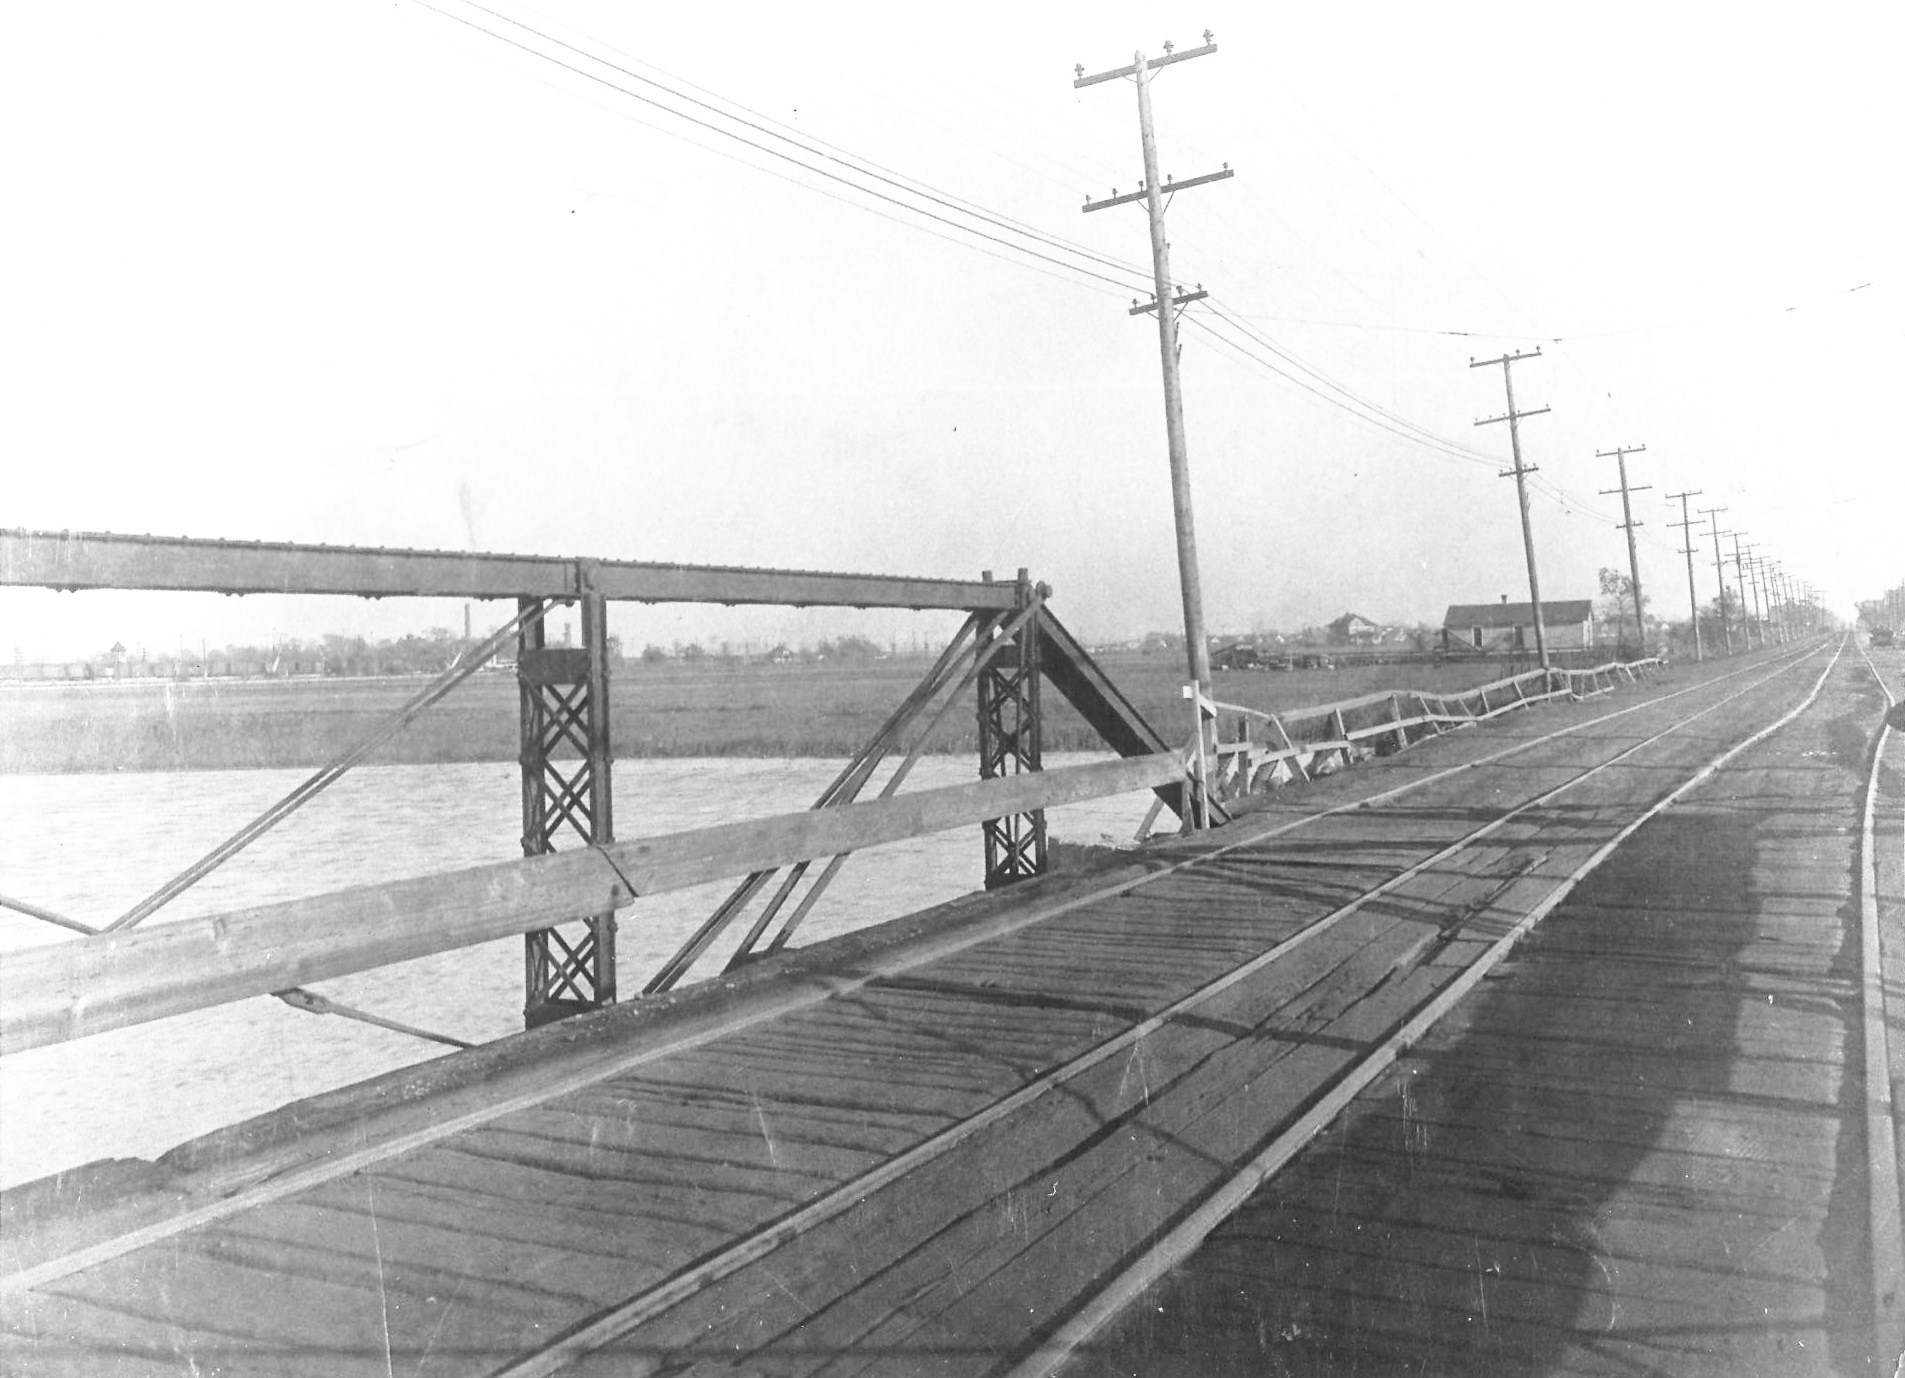 Growth changed the landscape of Whiting-Robertsdale. Wolf Lake, for instance, once flowed directly into Lake Michigan. Today, Indianapolis Boulevard crosses the arm of water at the northern end of Wolf Lake, taking thousands of motorists daily to and from Chicago. This photo shows one of the earliest bridges to cross that section of Wolf Lake. The photo was taken around 1900. The track in the middle of the bridge was for the street cars that connected Whiting-Robertsdale to Chicago, which was the primary way people from this area got to and from Chicago in the years before automobiles became common.